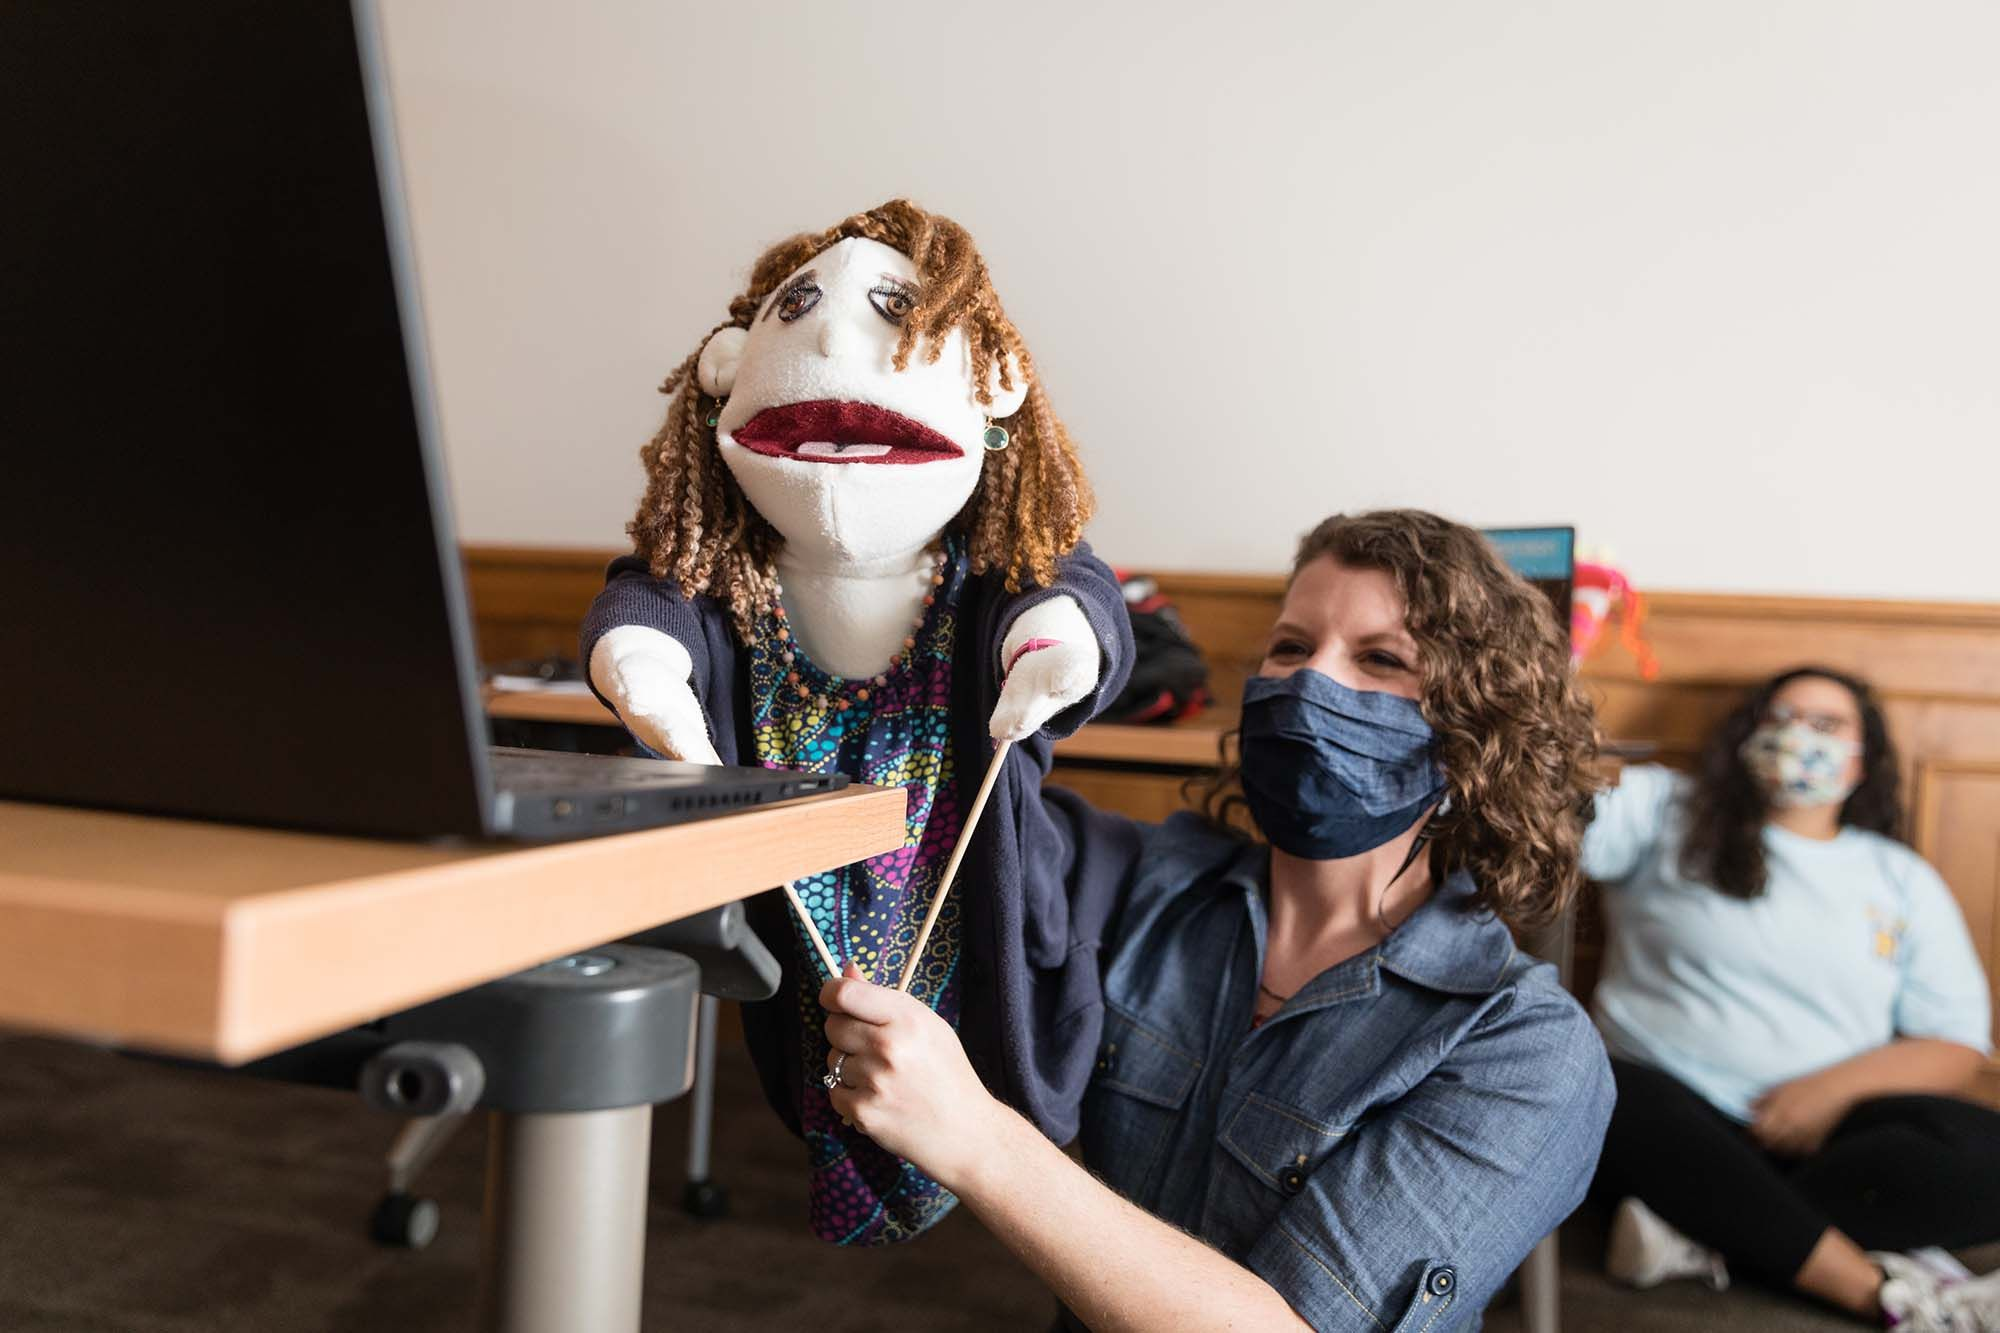 Instructor Sarah Parsloe poses with a puppet